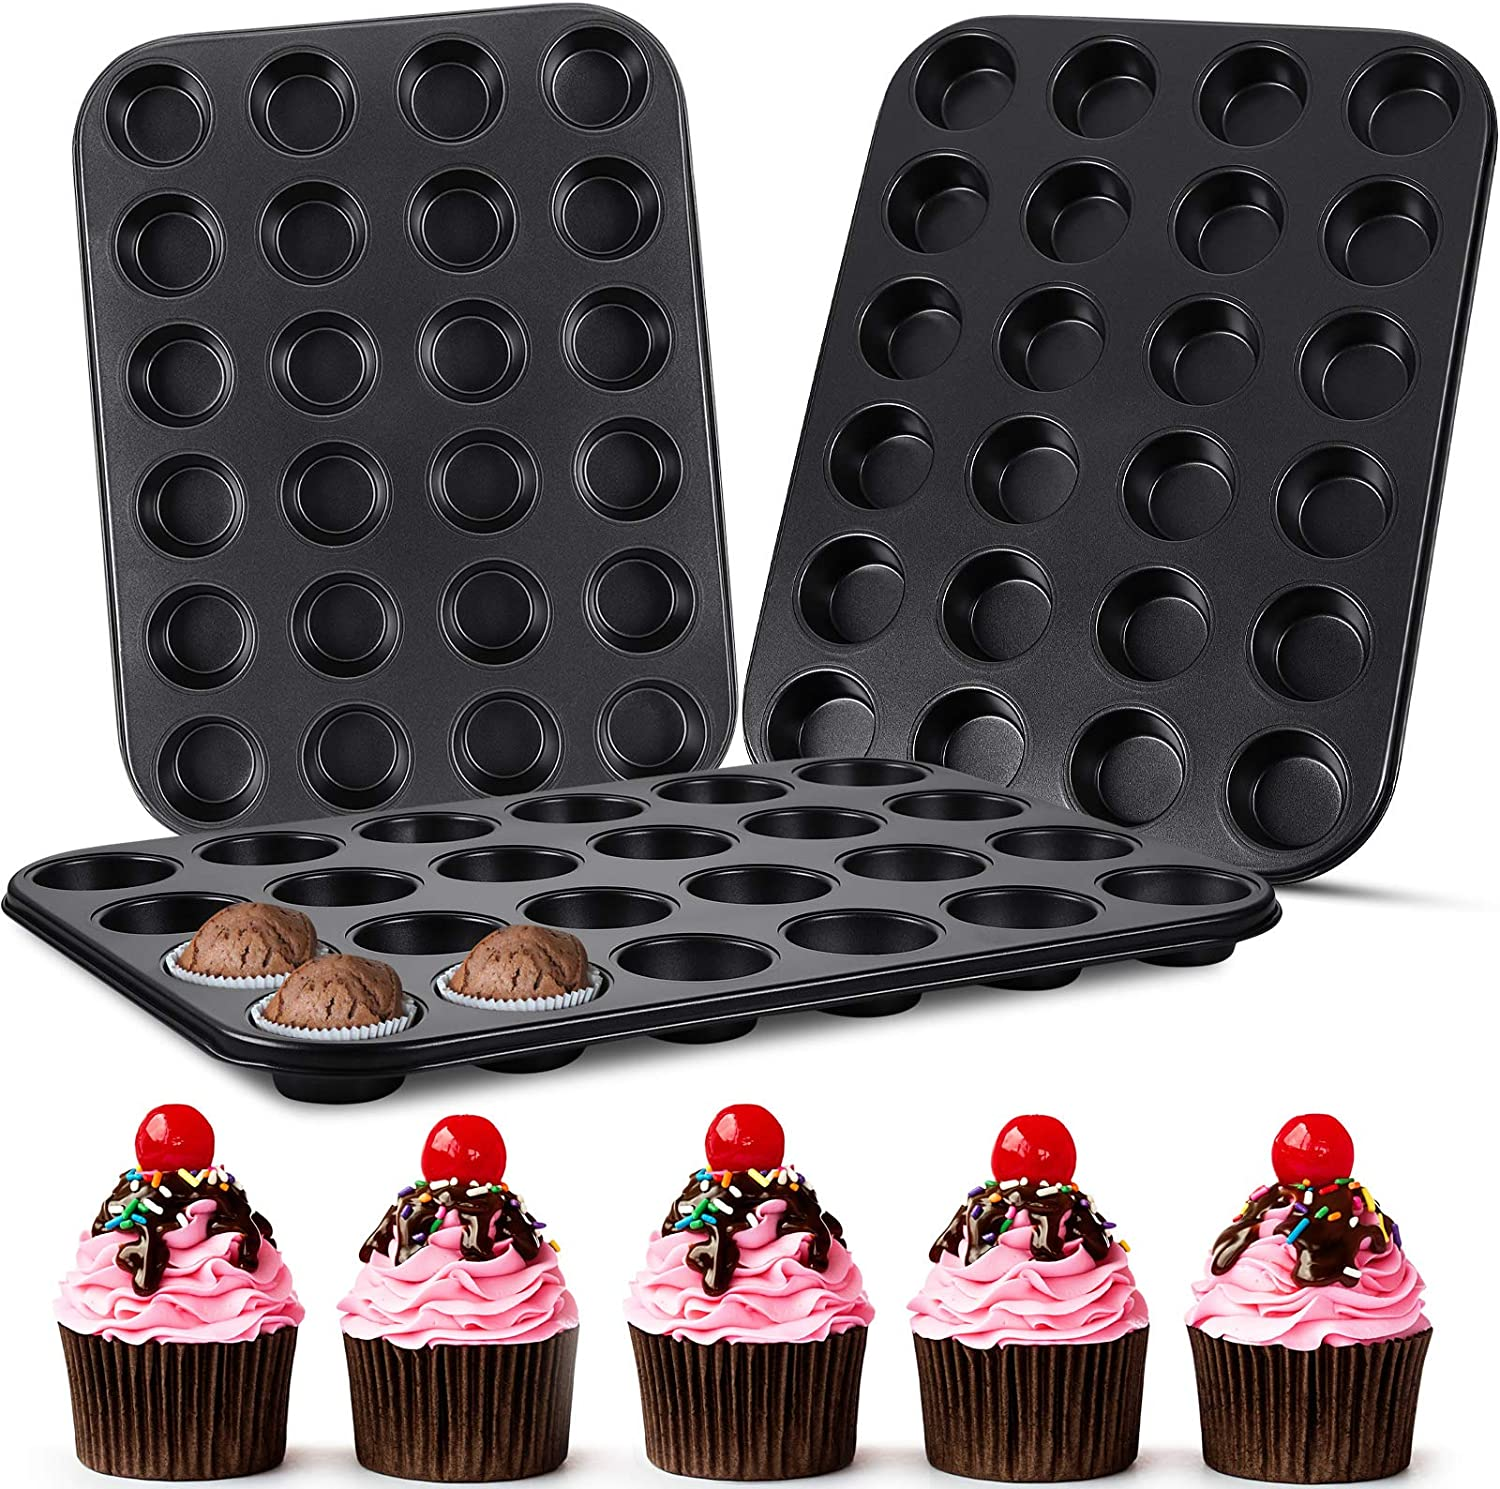 Albuquerque Mall 3 Pieces 24 Cups Mini Muffin Ranking TOP5 Pans Carbon Cupcake Steel Tin Trays